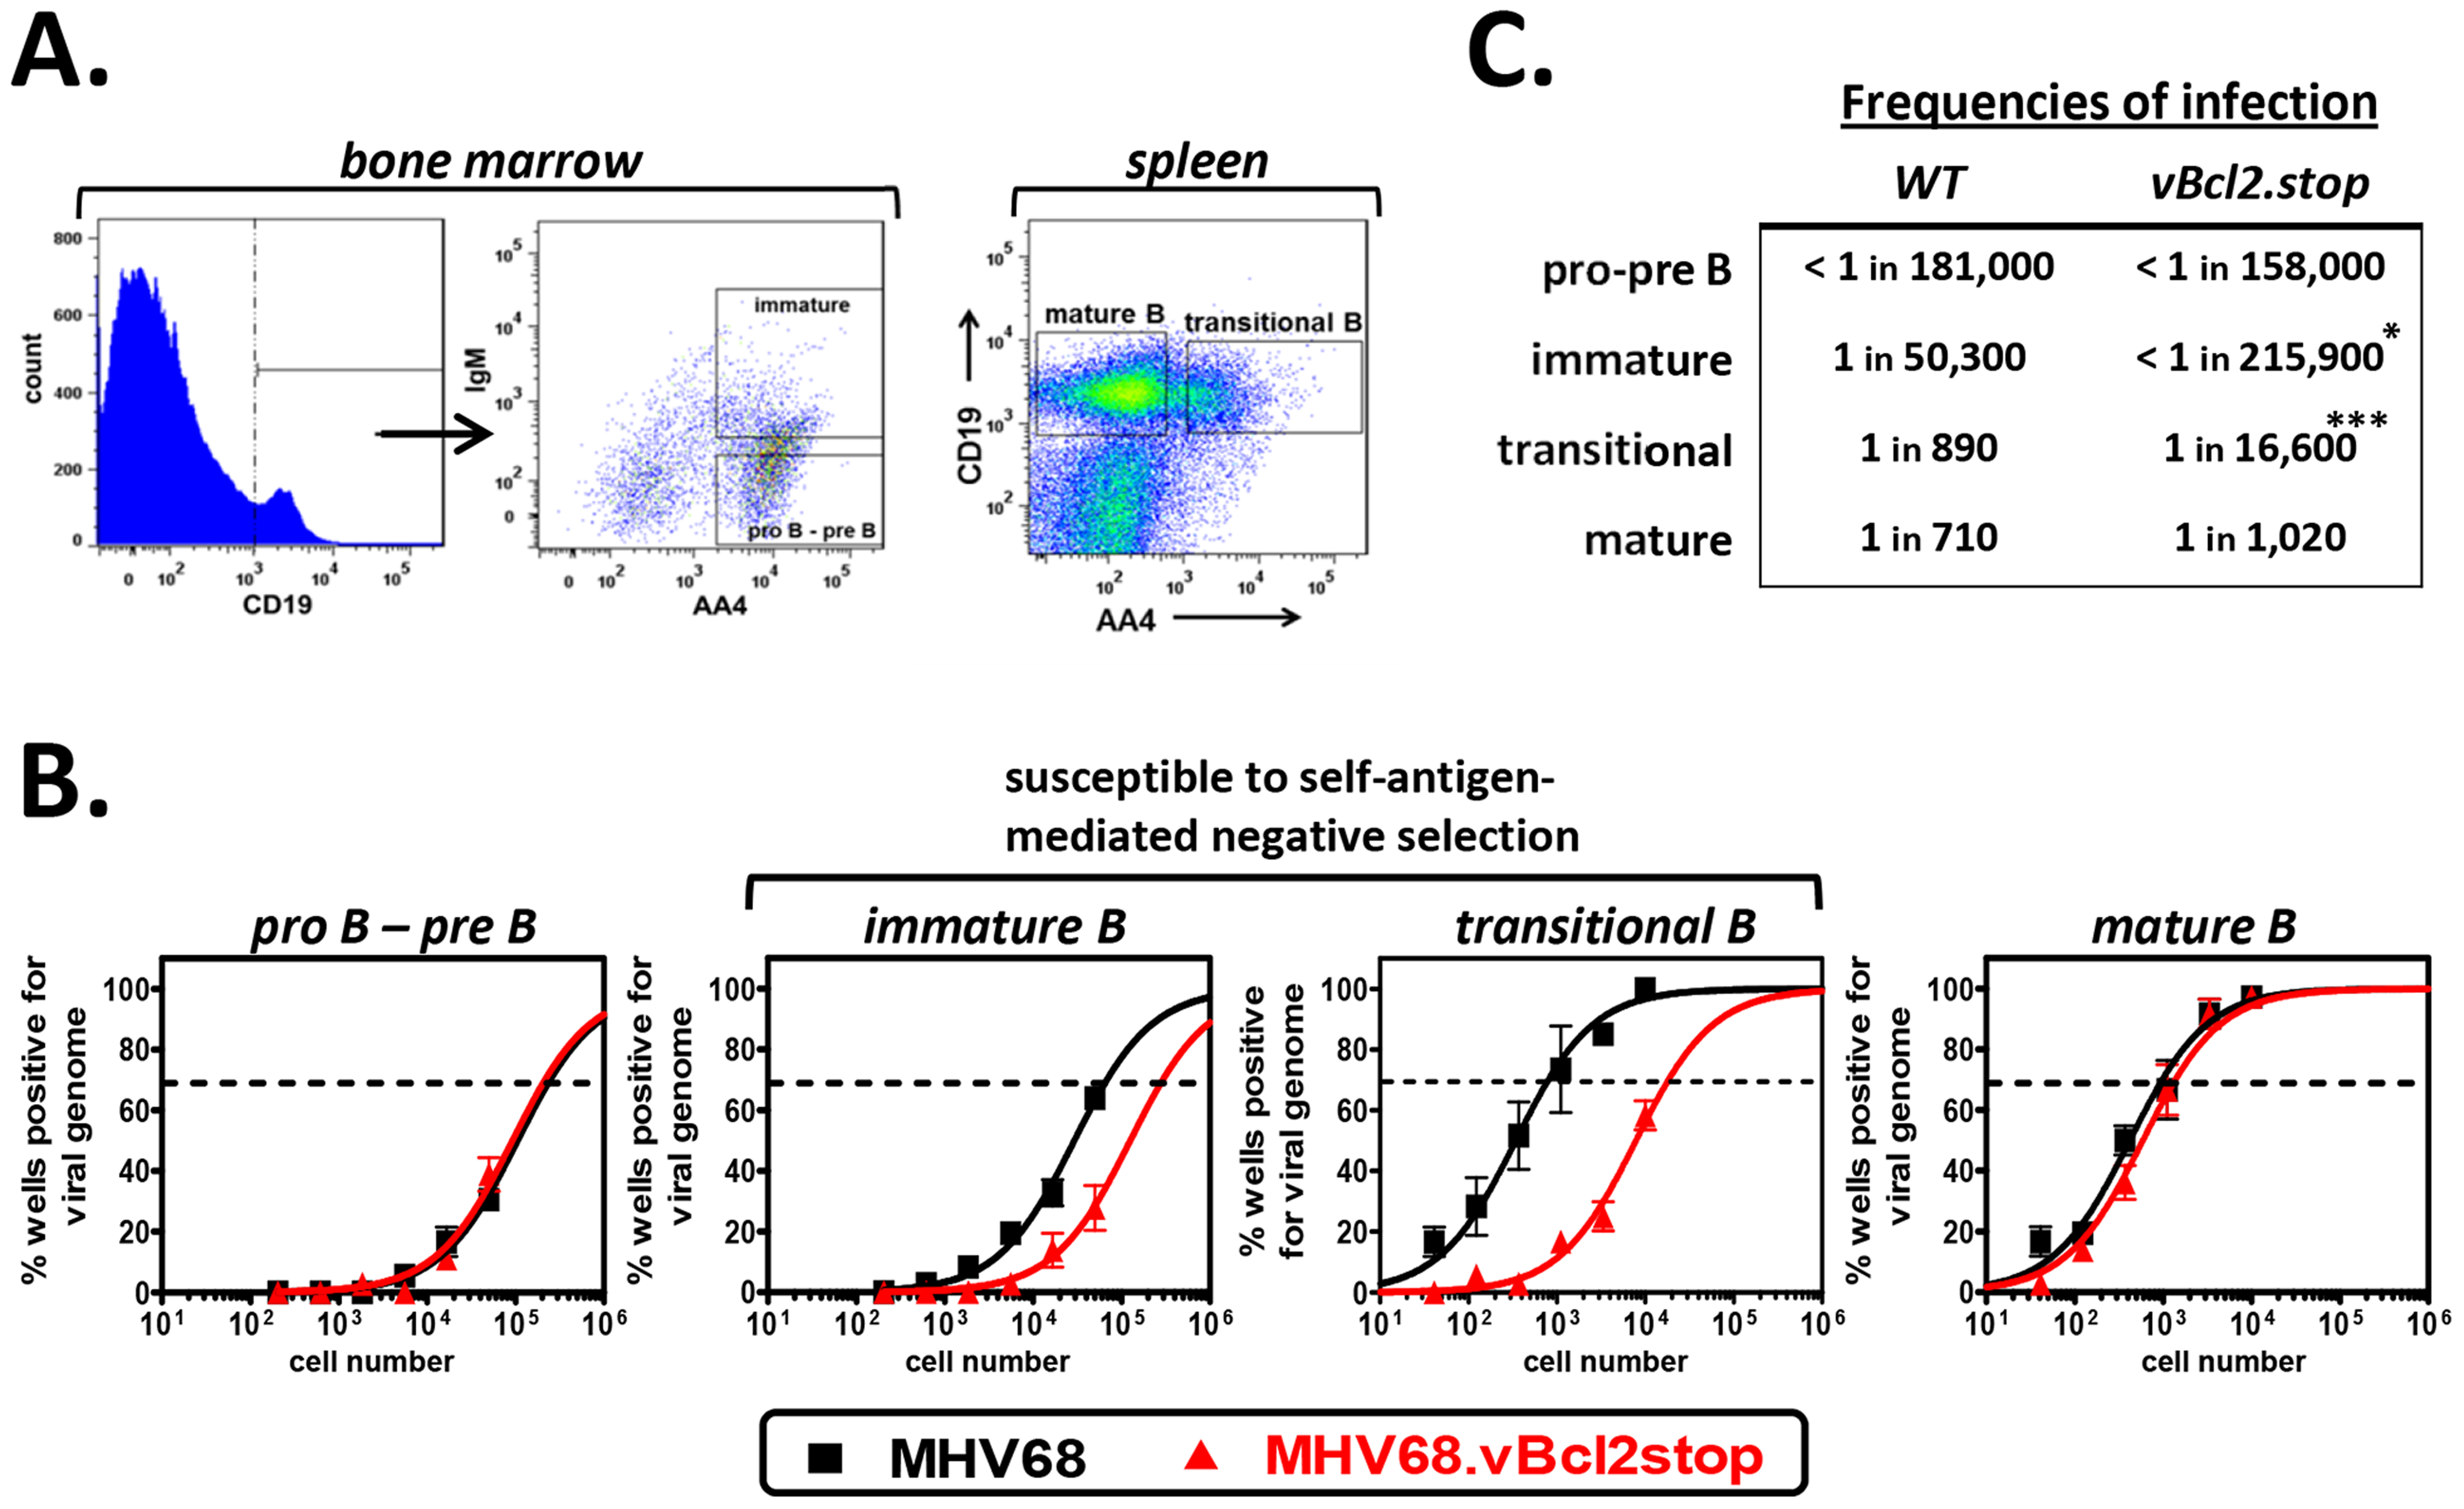 MHV68.vBcl2stop is attenuated in B cells undergoing negative selection.